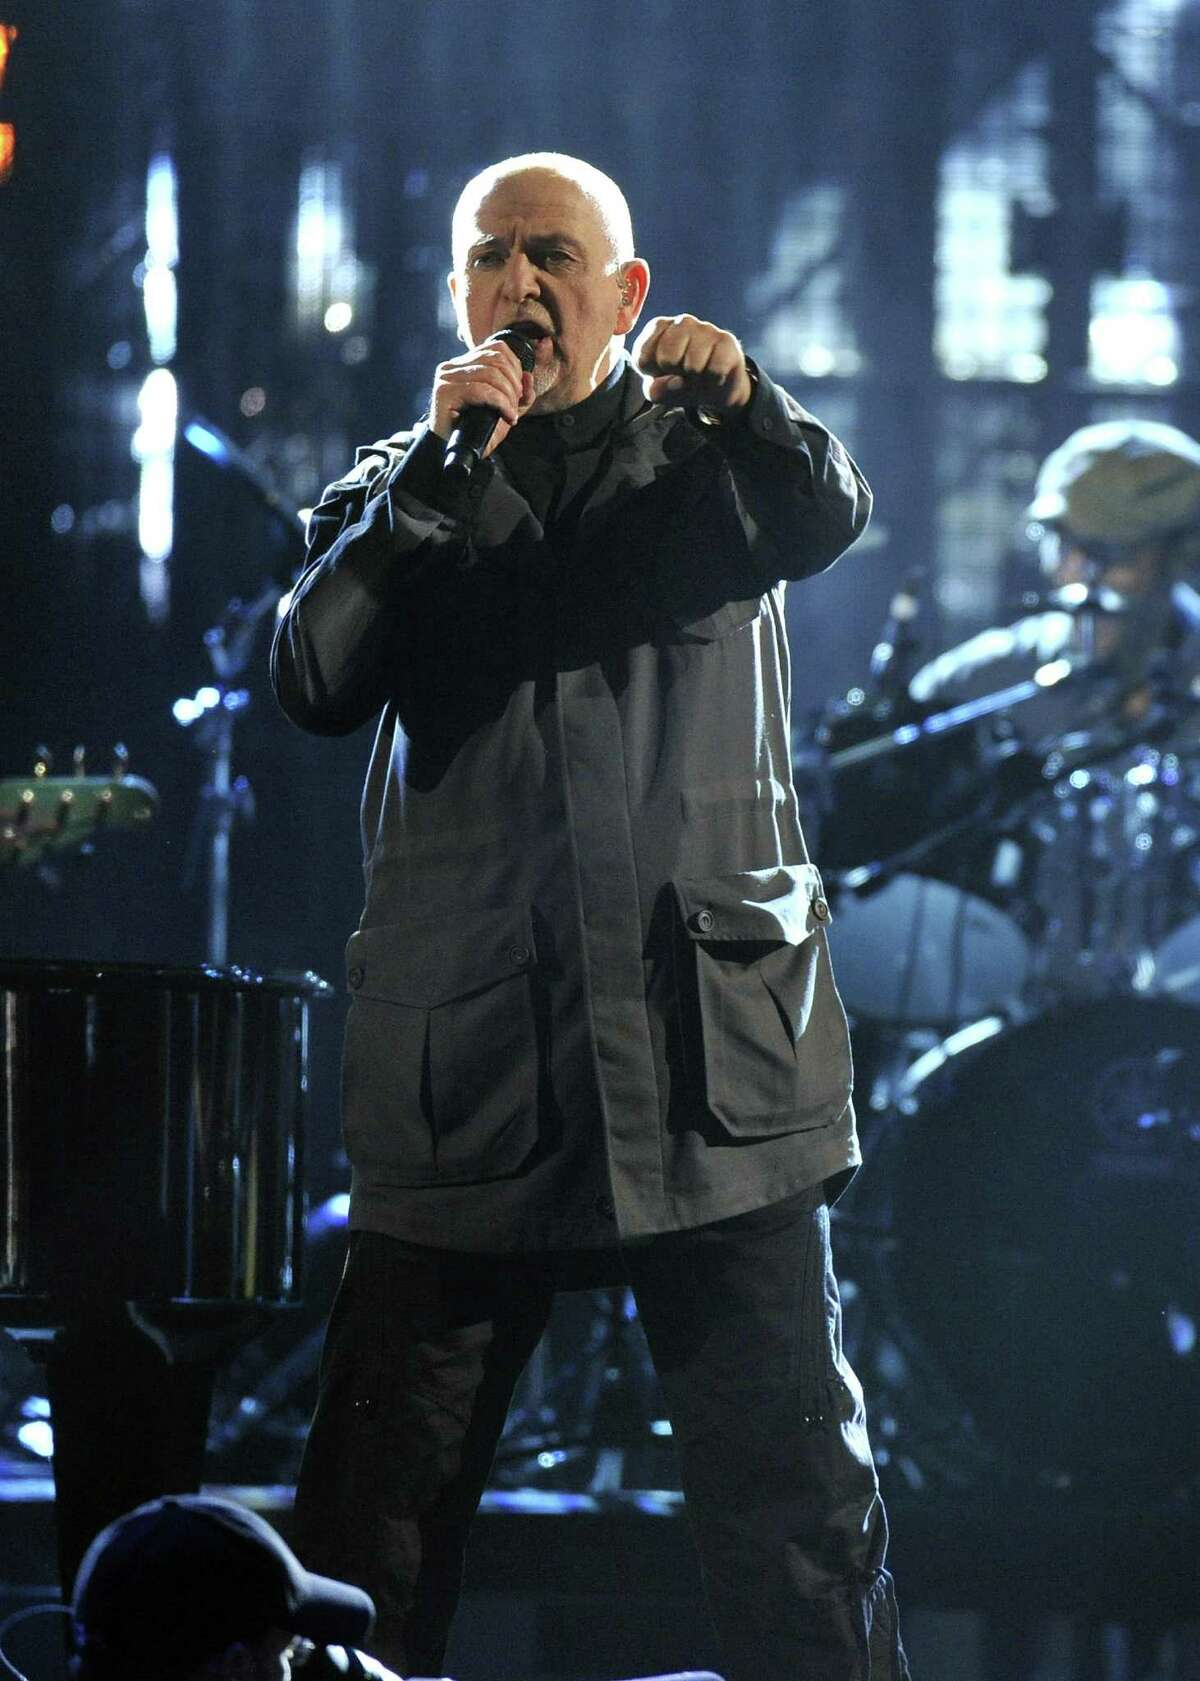 Hall of Fame Inductee Peter Gabriel performs at the 2014 Rock and Roll Hall of Fame Induction Ceremony on Thursday, April, 10, 2014, in New York. (Photo by Charles Sykes/Invision/AP) ORG XMIT: NYCS002